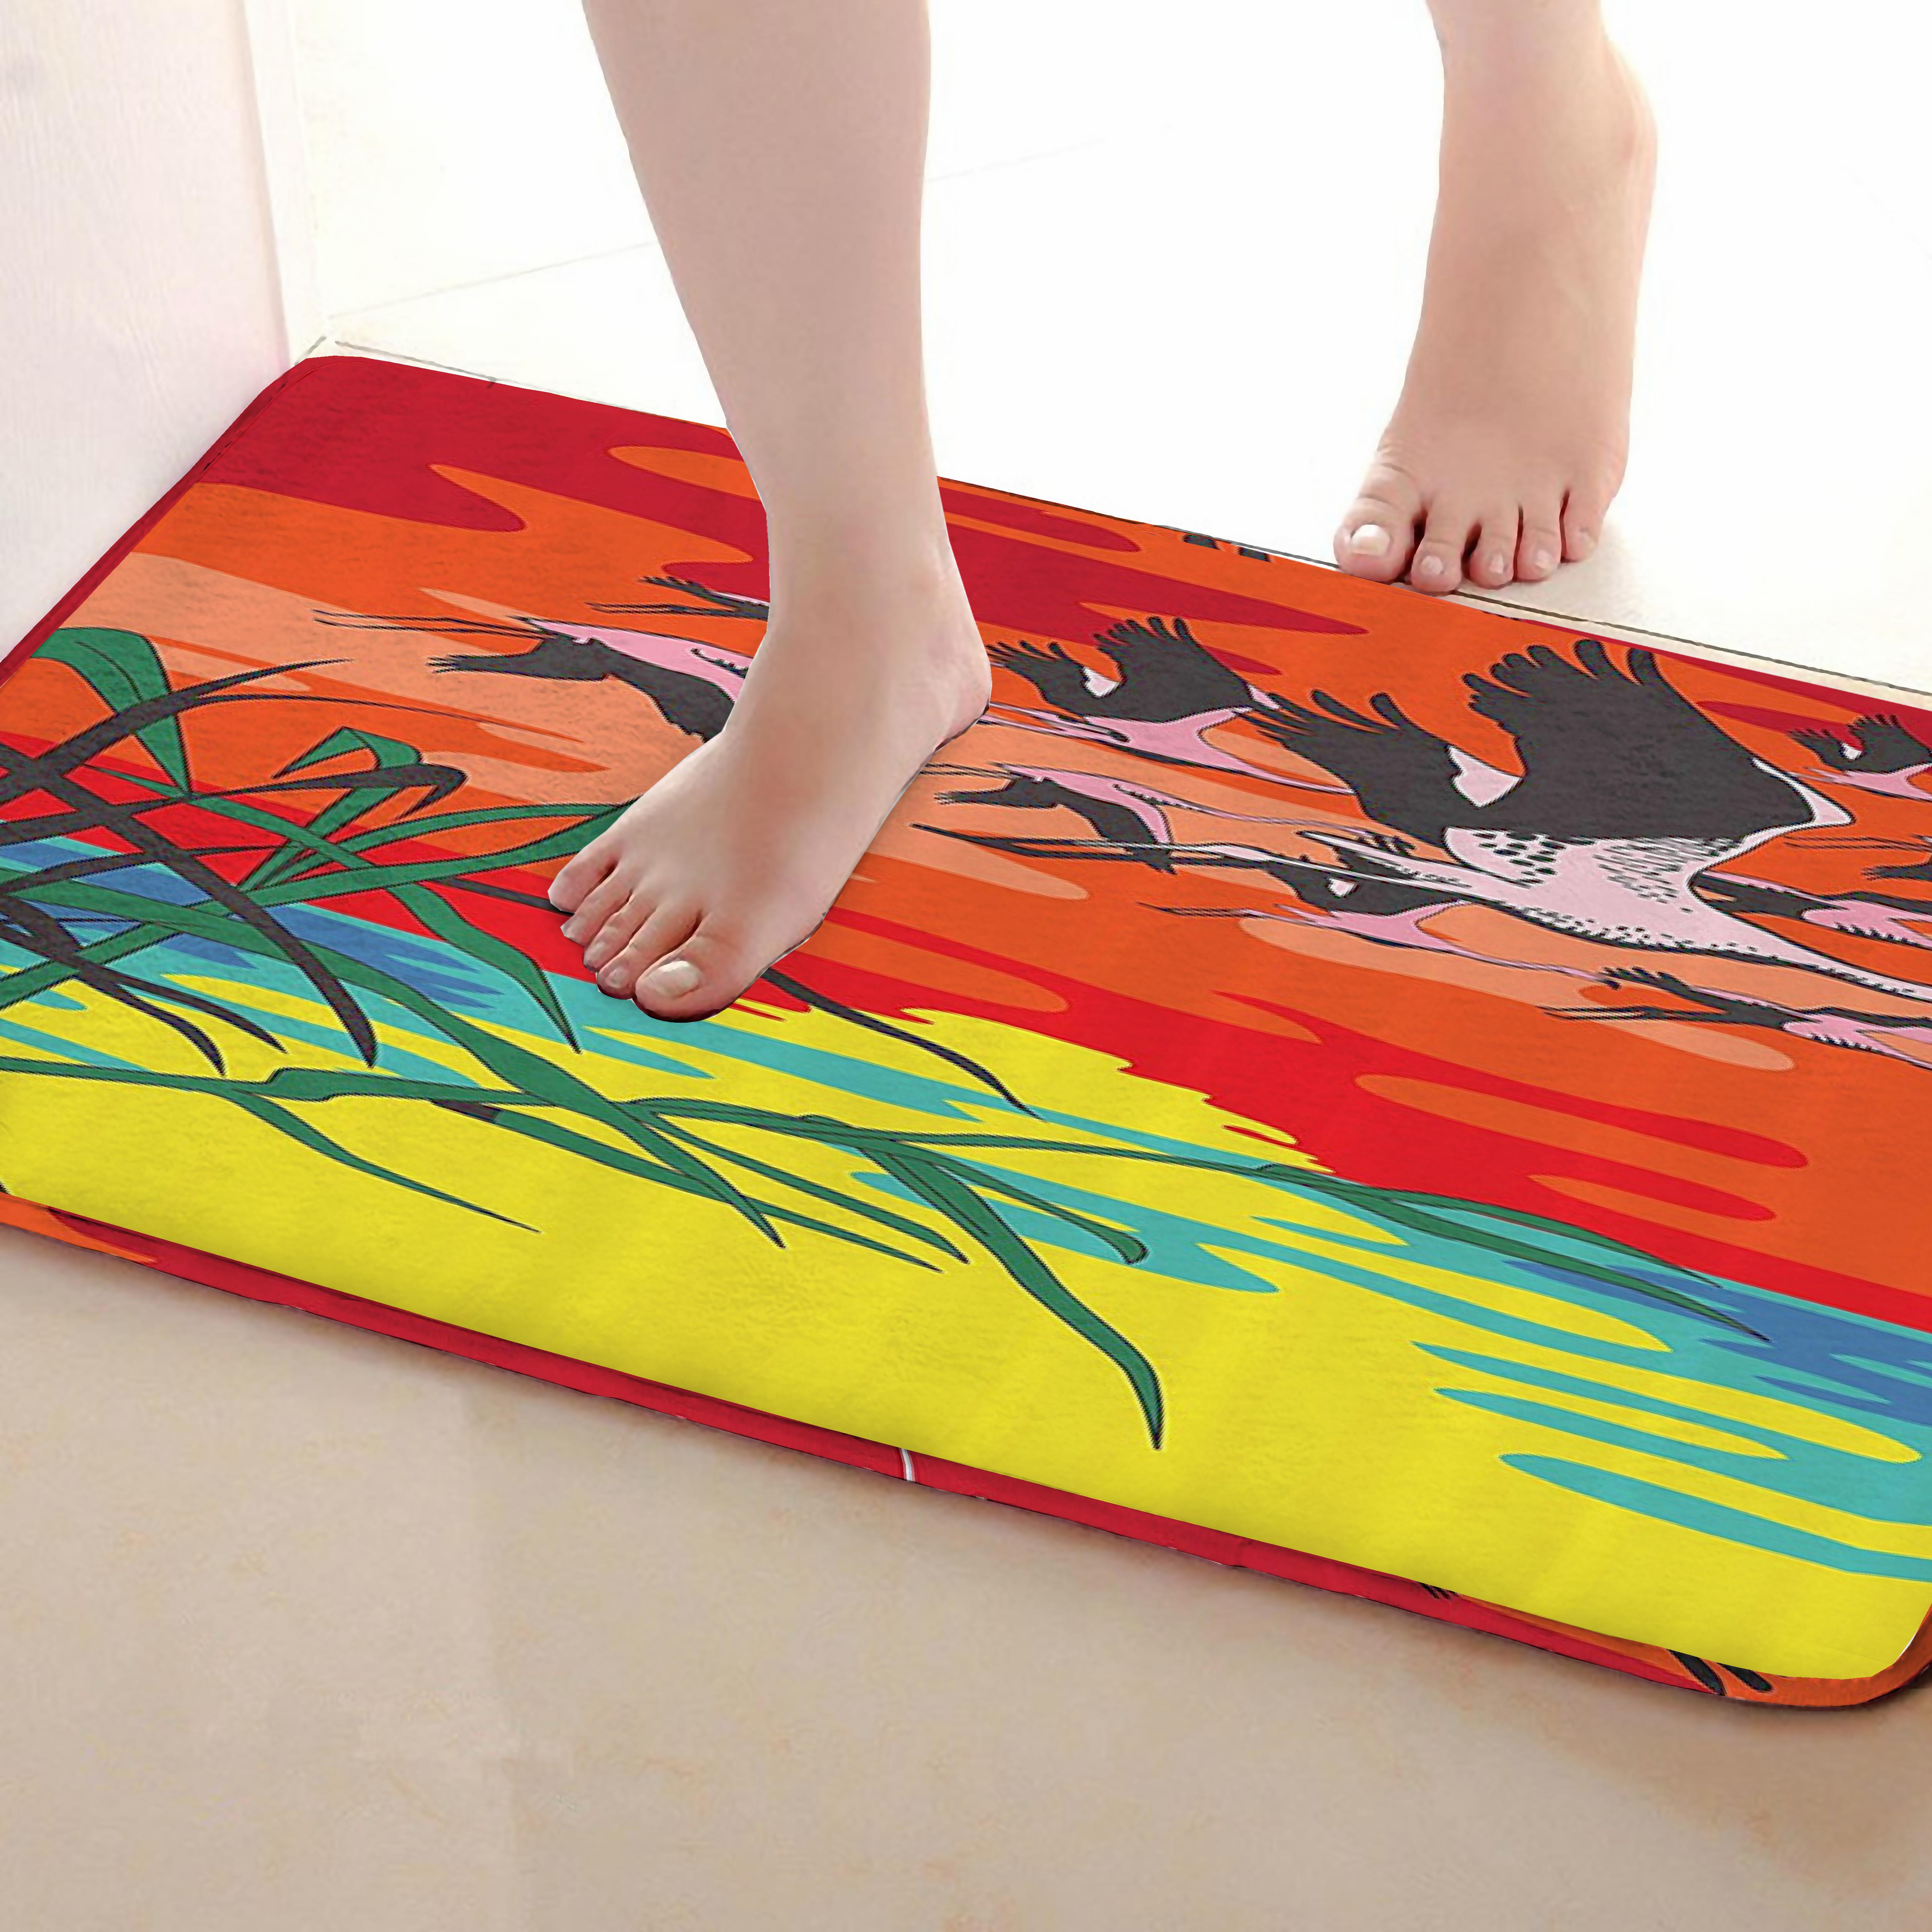 Flamingo Style Bathroom Mat,Funny Anti skid Bath Mat,Shower Curtains Accessories,Matching Your Shower Curtain